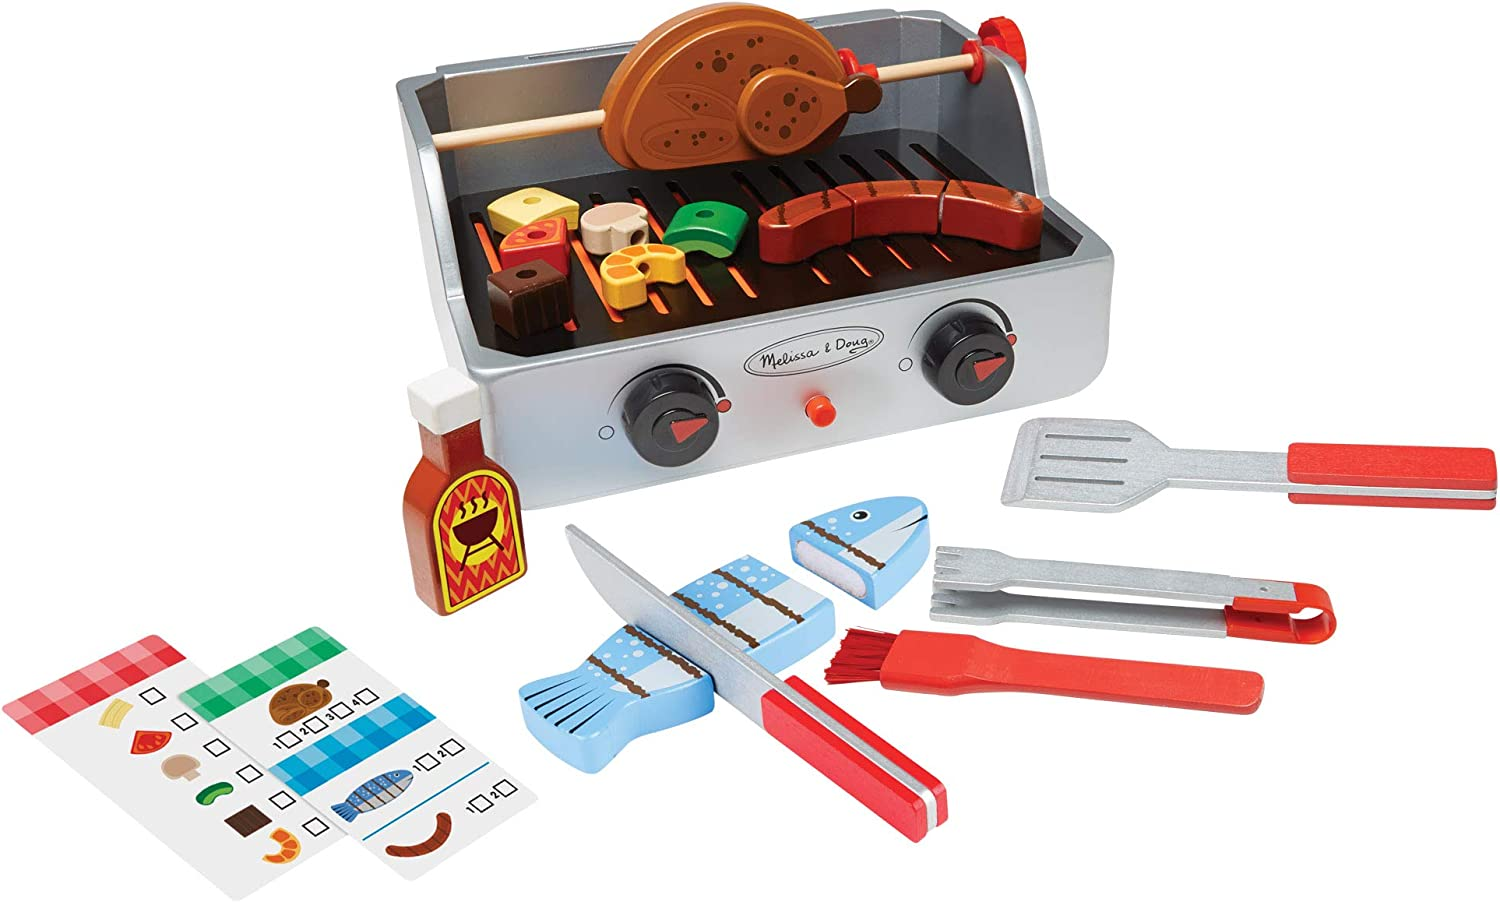 Melissa & Doug 19269 Rotisserie & Grill Barbecue Set | Pretend Play | Wooden Food | 3+ | Gift for Boy or Girl